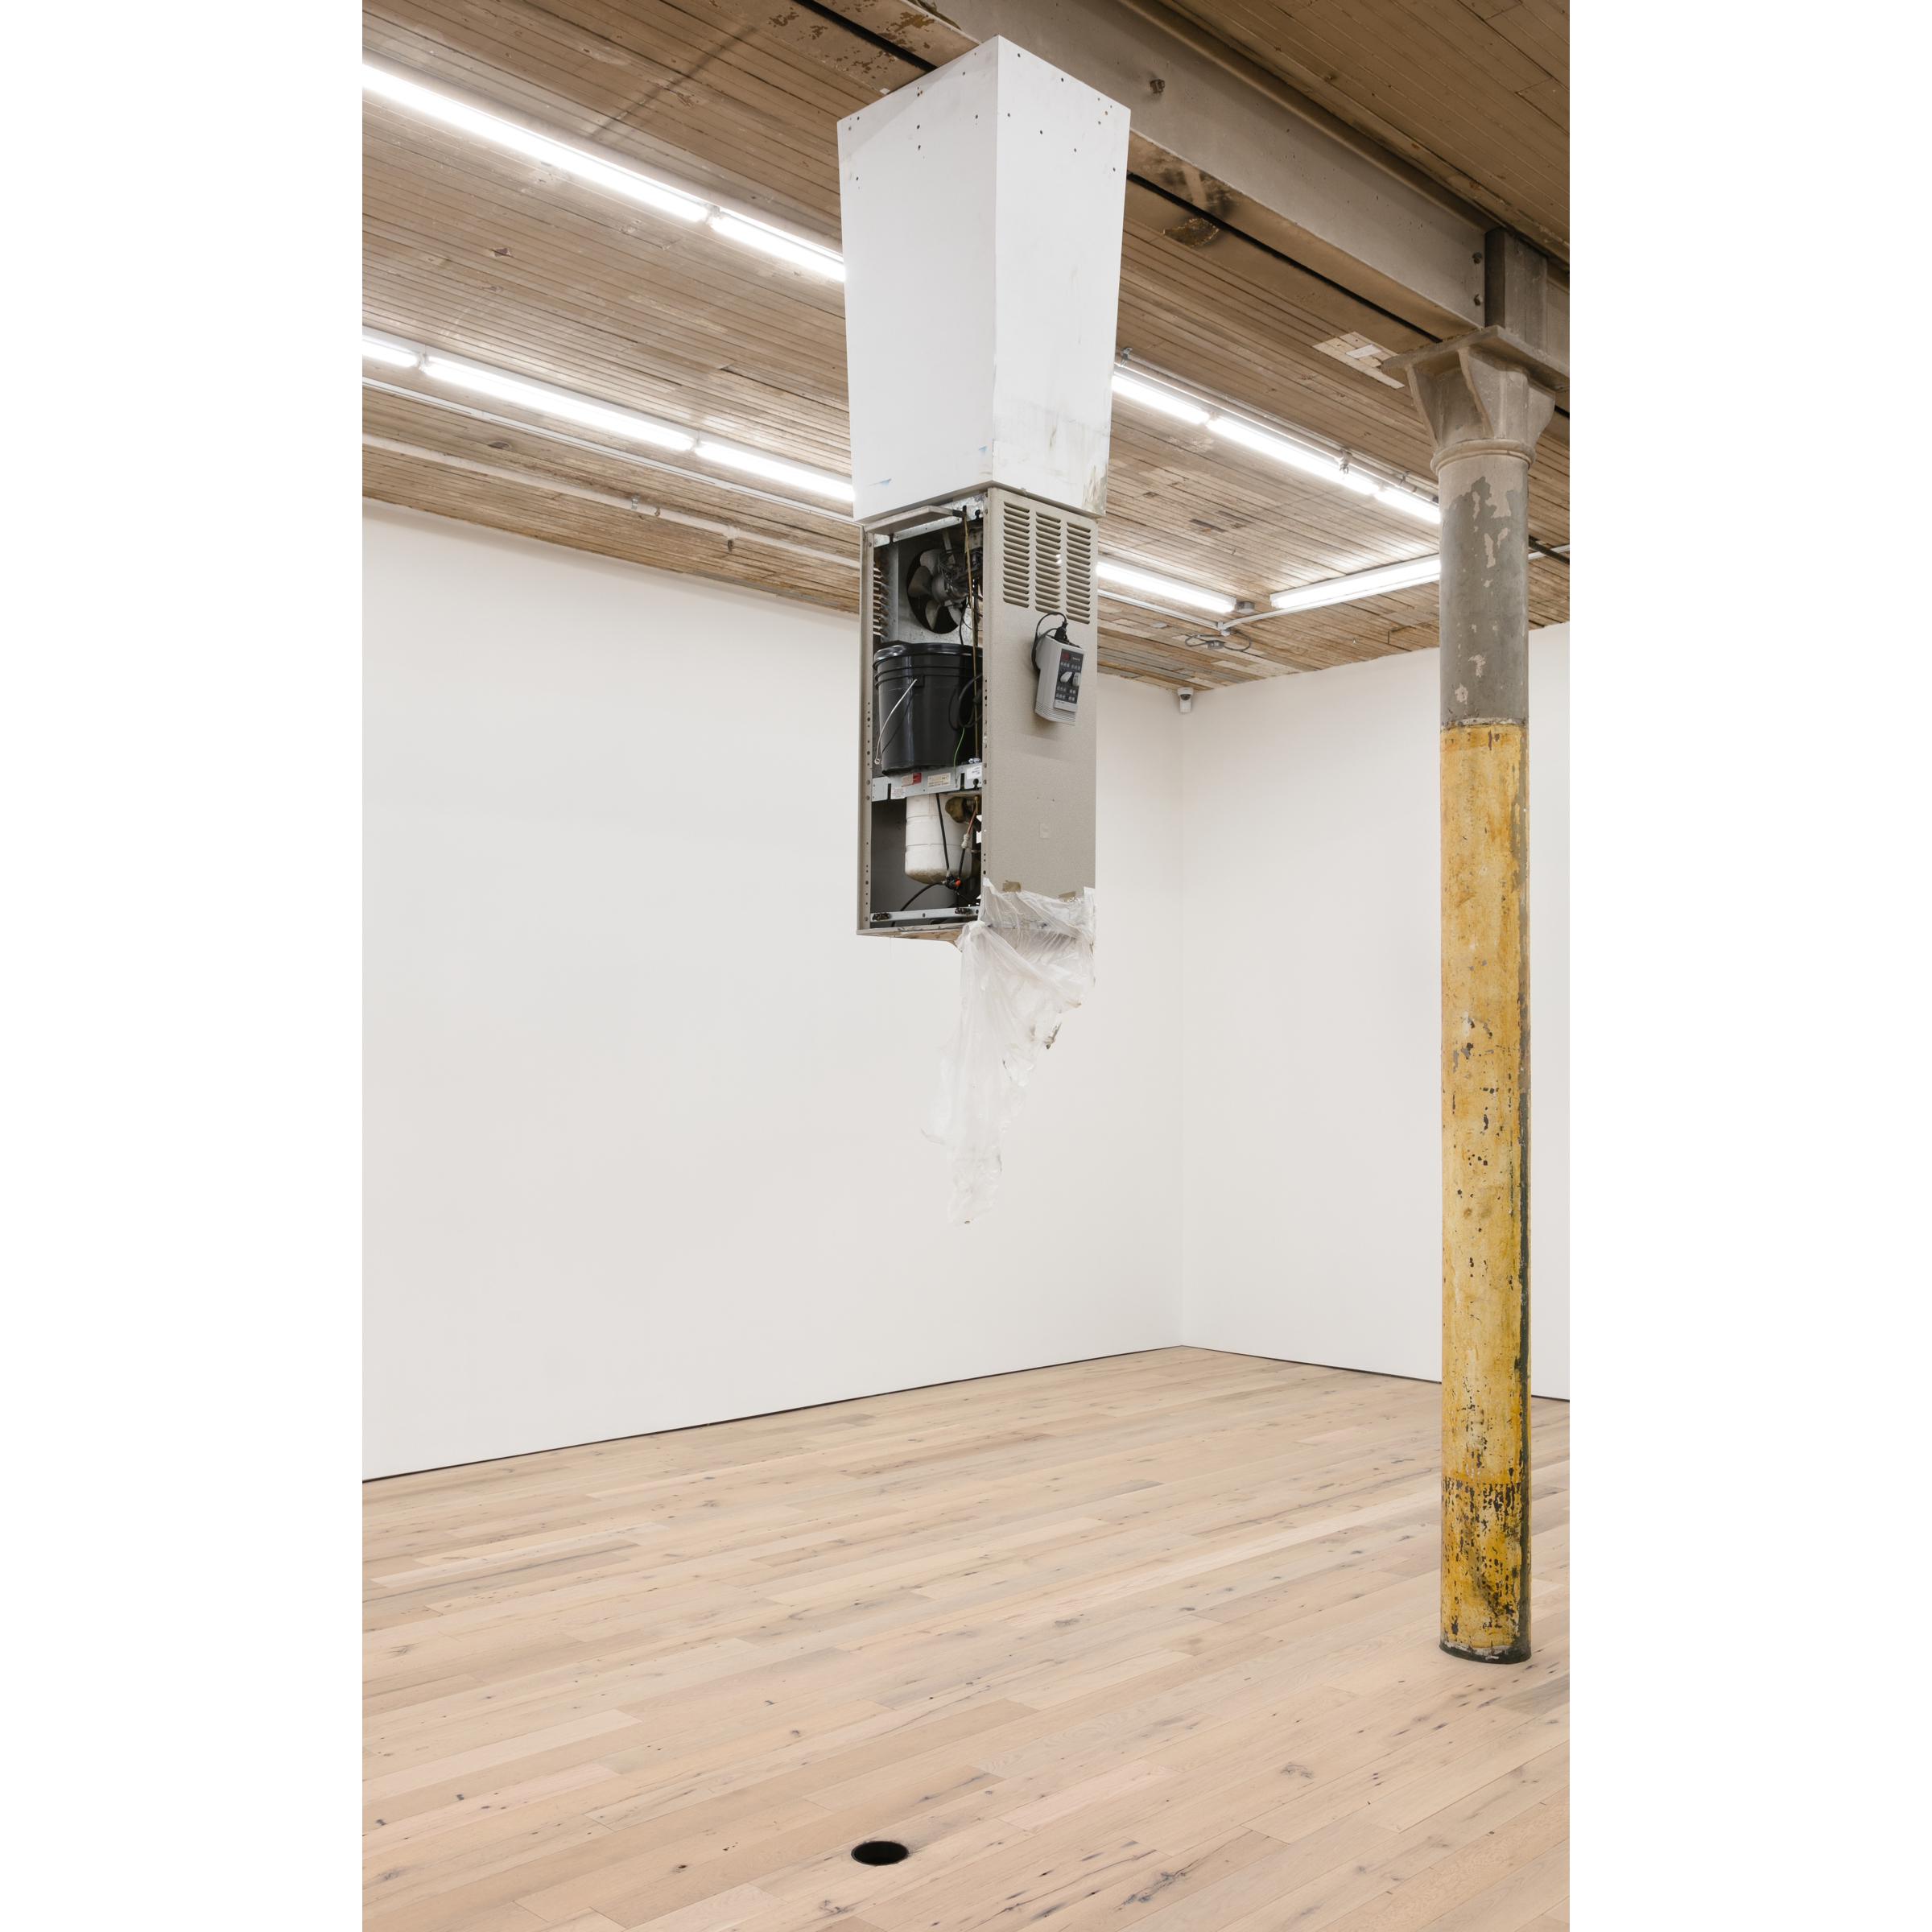 Pope.L, Pedestal , 2017, acrylic paint, drain, Elkay drinking fountain #EFA201F, hardware, hole, photo timer, plastic pail, plastic sheeting, solenoid, tape, tubing, and wood, dimensions variable